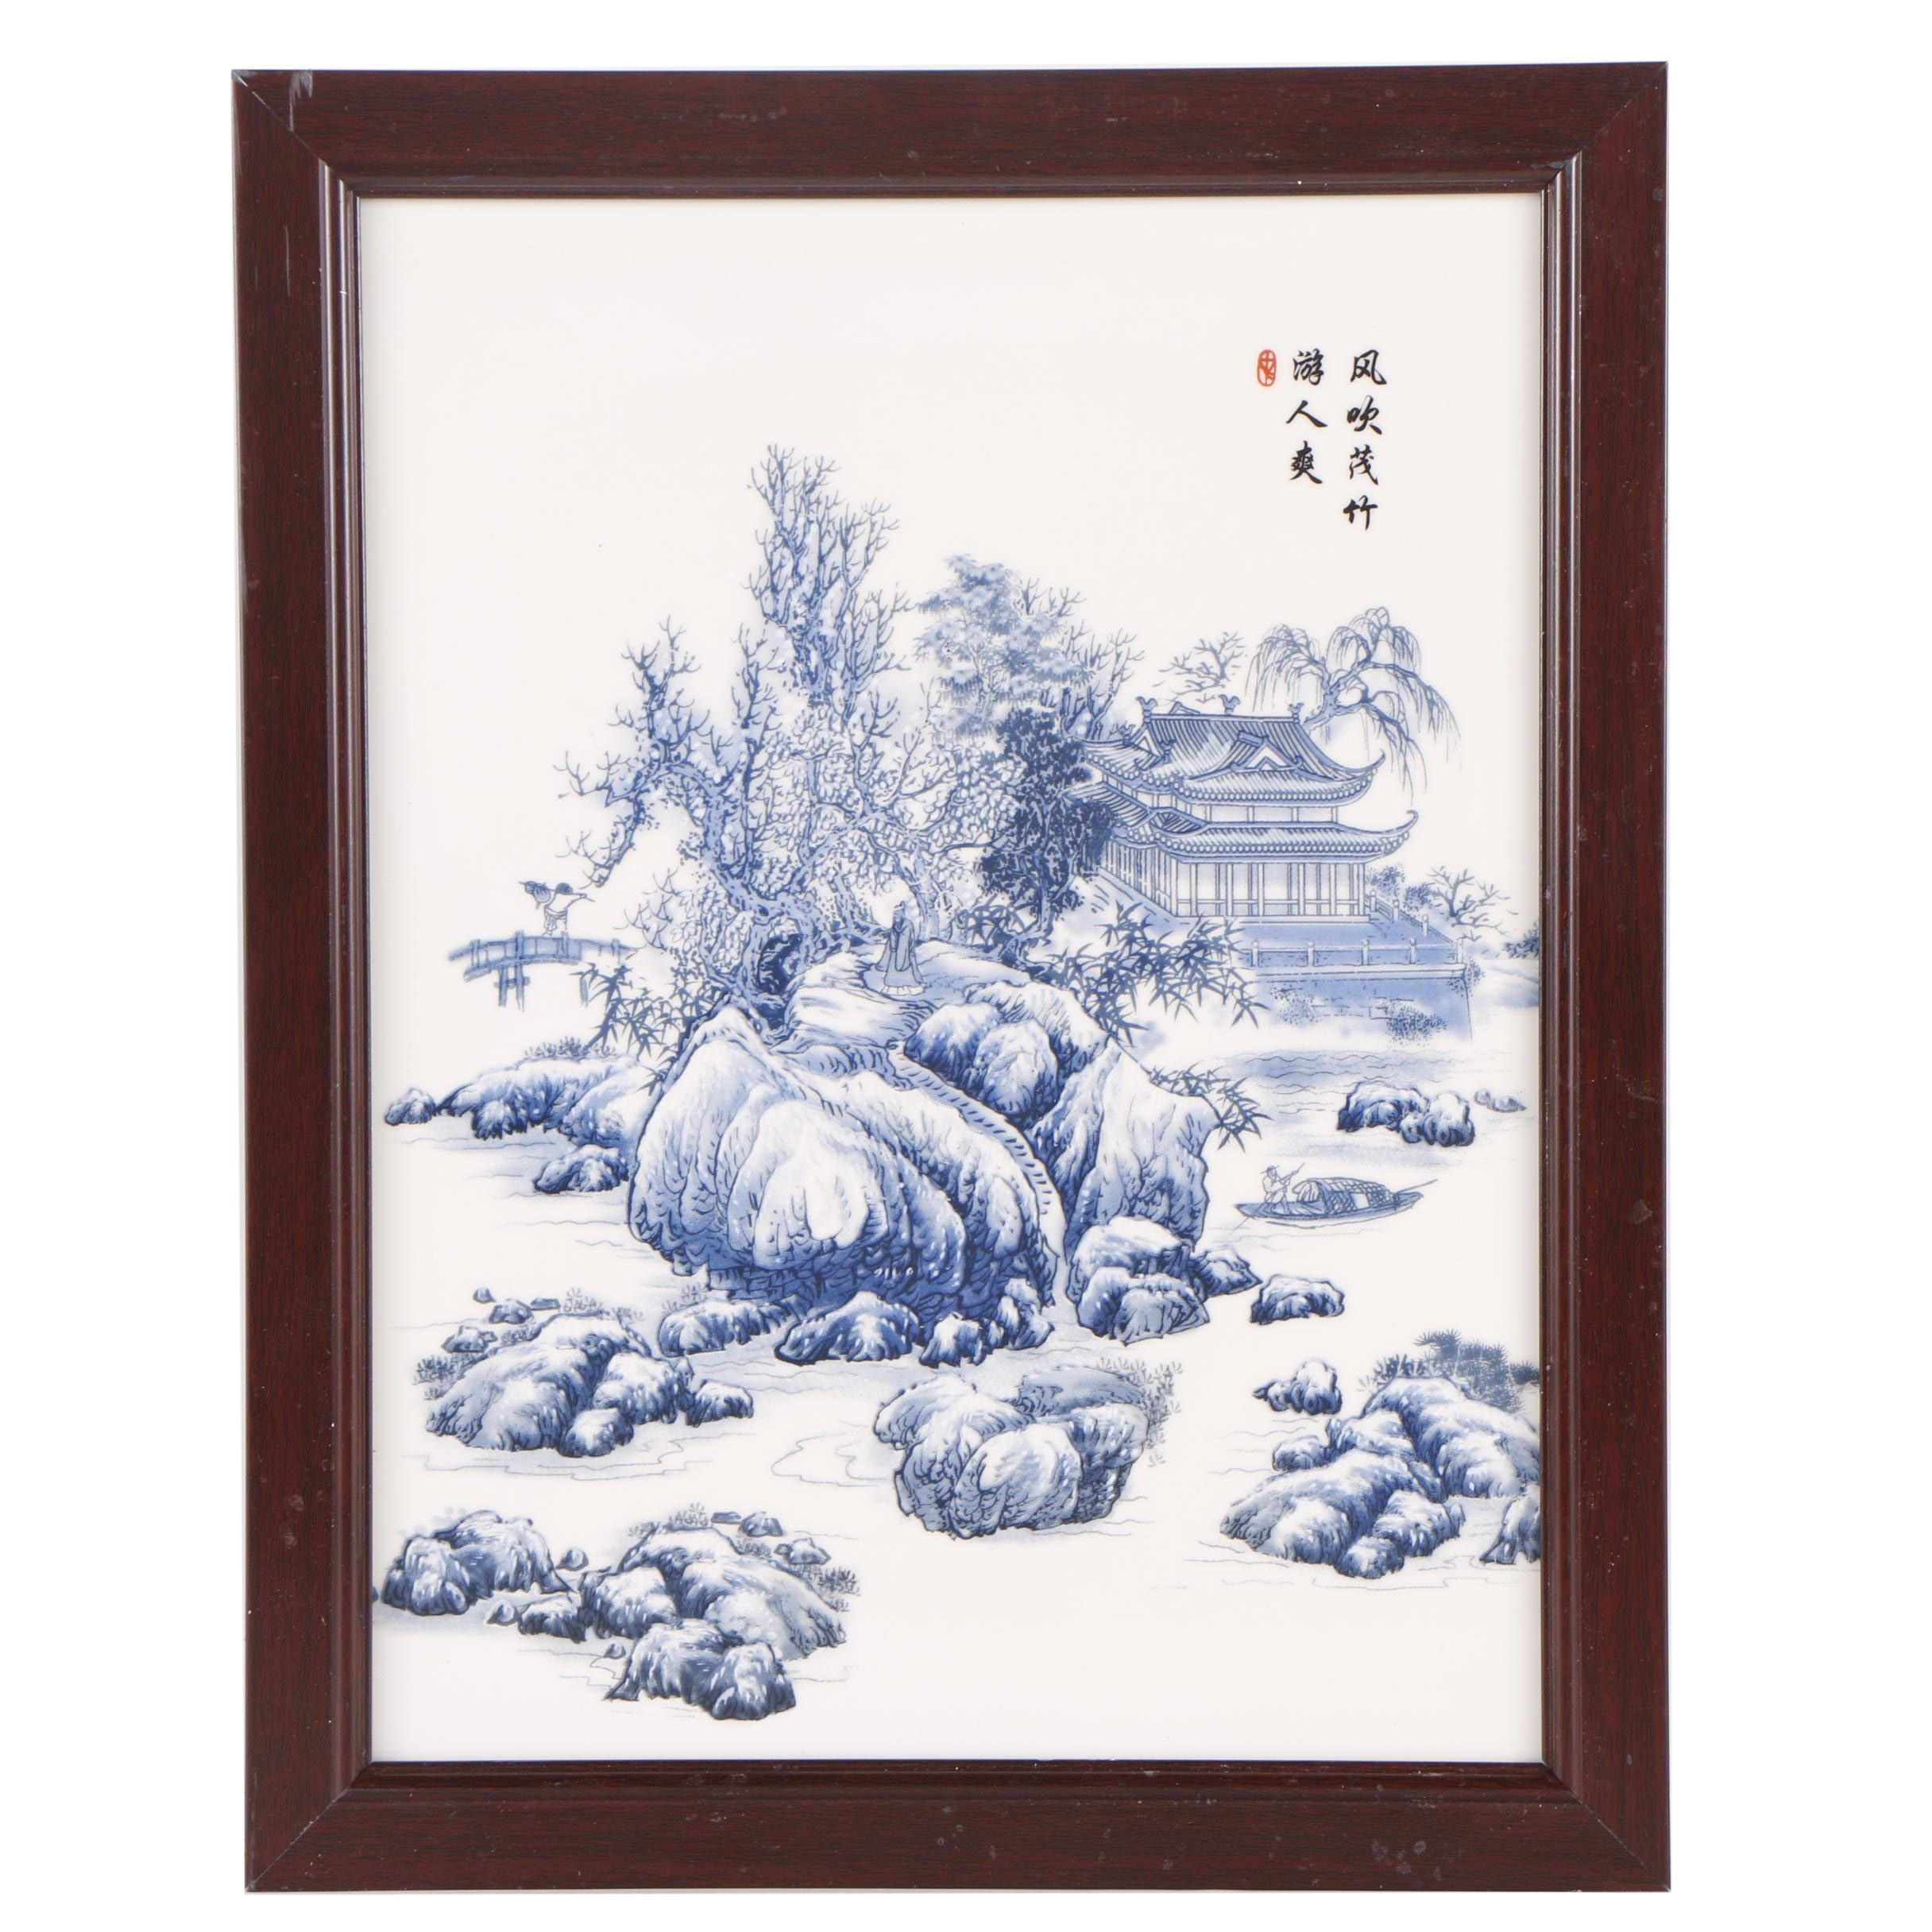 Chinese Ceramic Transferware Plaque of Waterside Landscape Scene